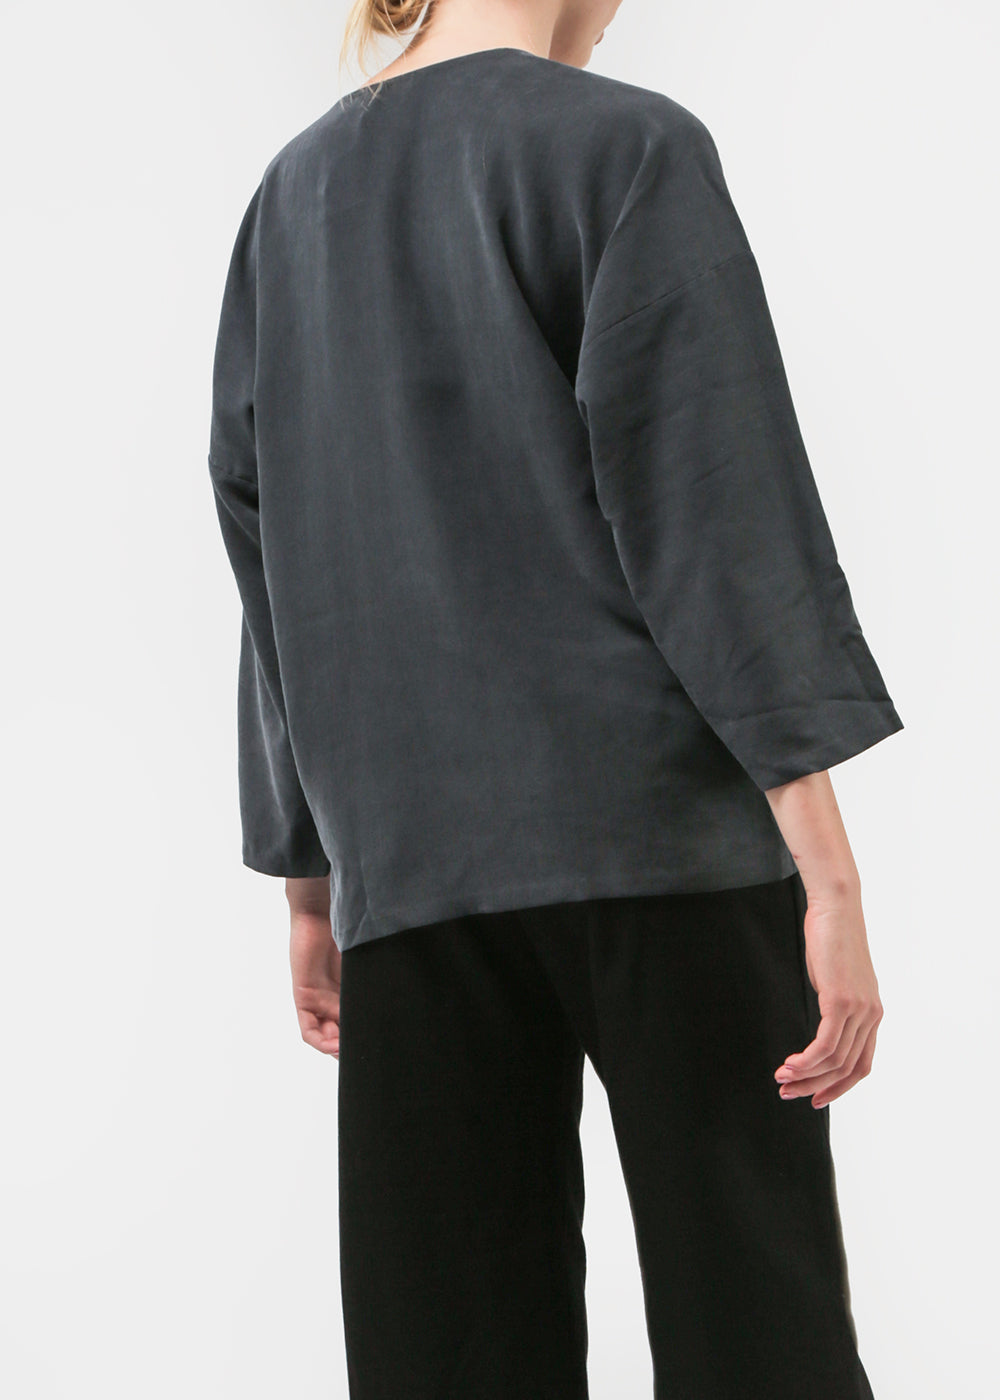 Kaarem Tru Boatneck Top — Shop sustainable fashion and slow fashion at New Classics Studios